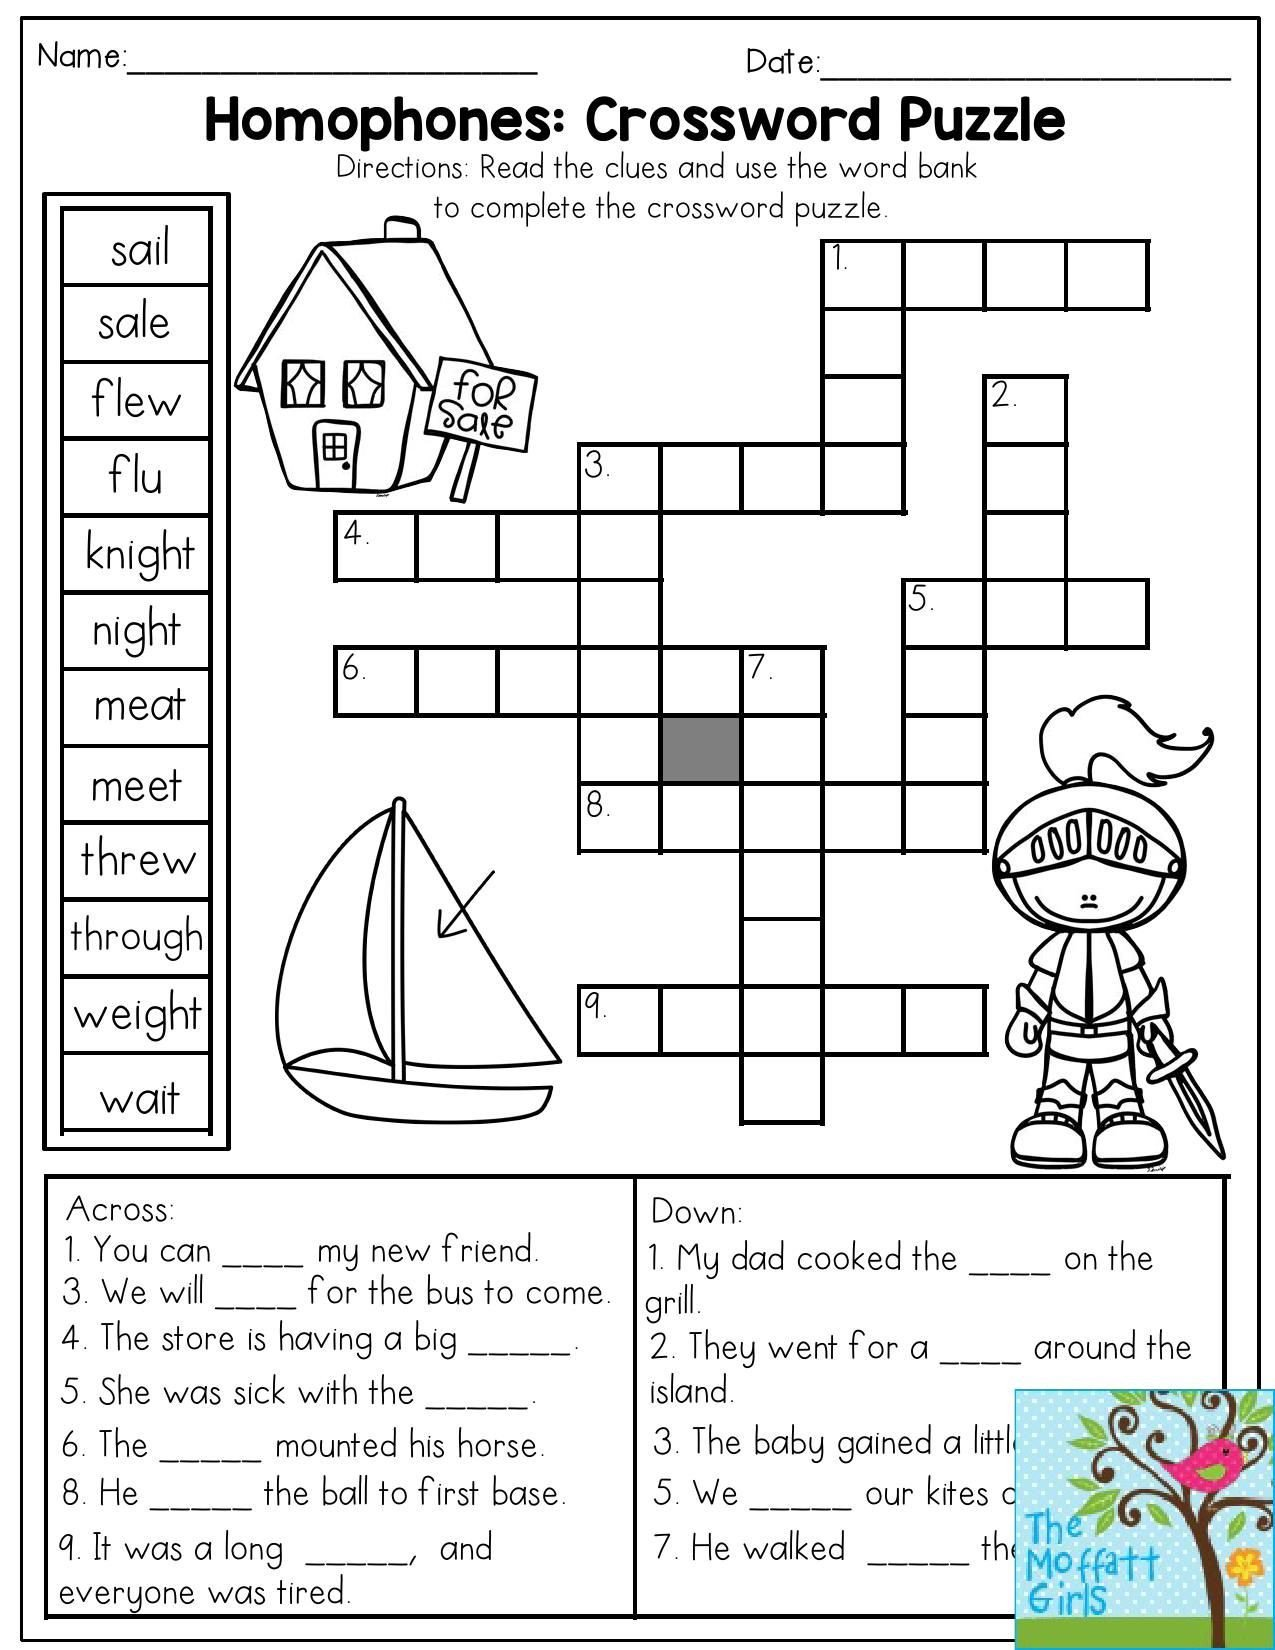 Homophones Worksheets for Grade 5 Homophones Crossword Puzzle Read the Clues and Use the